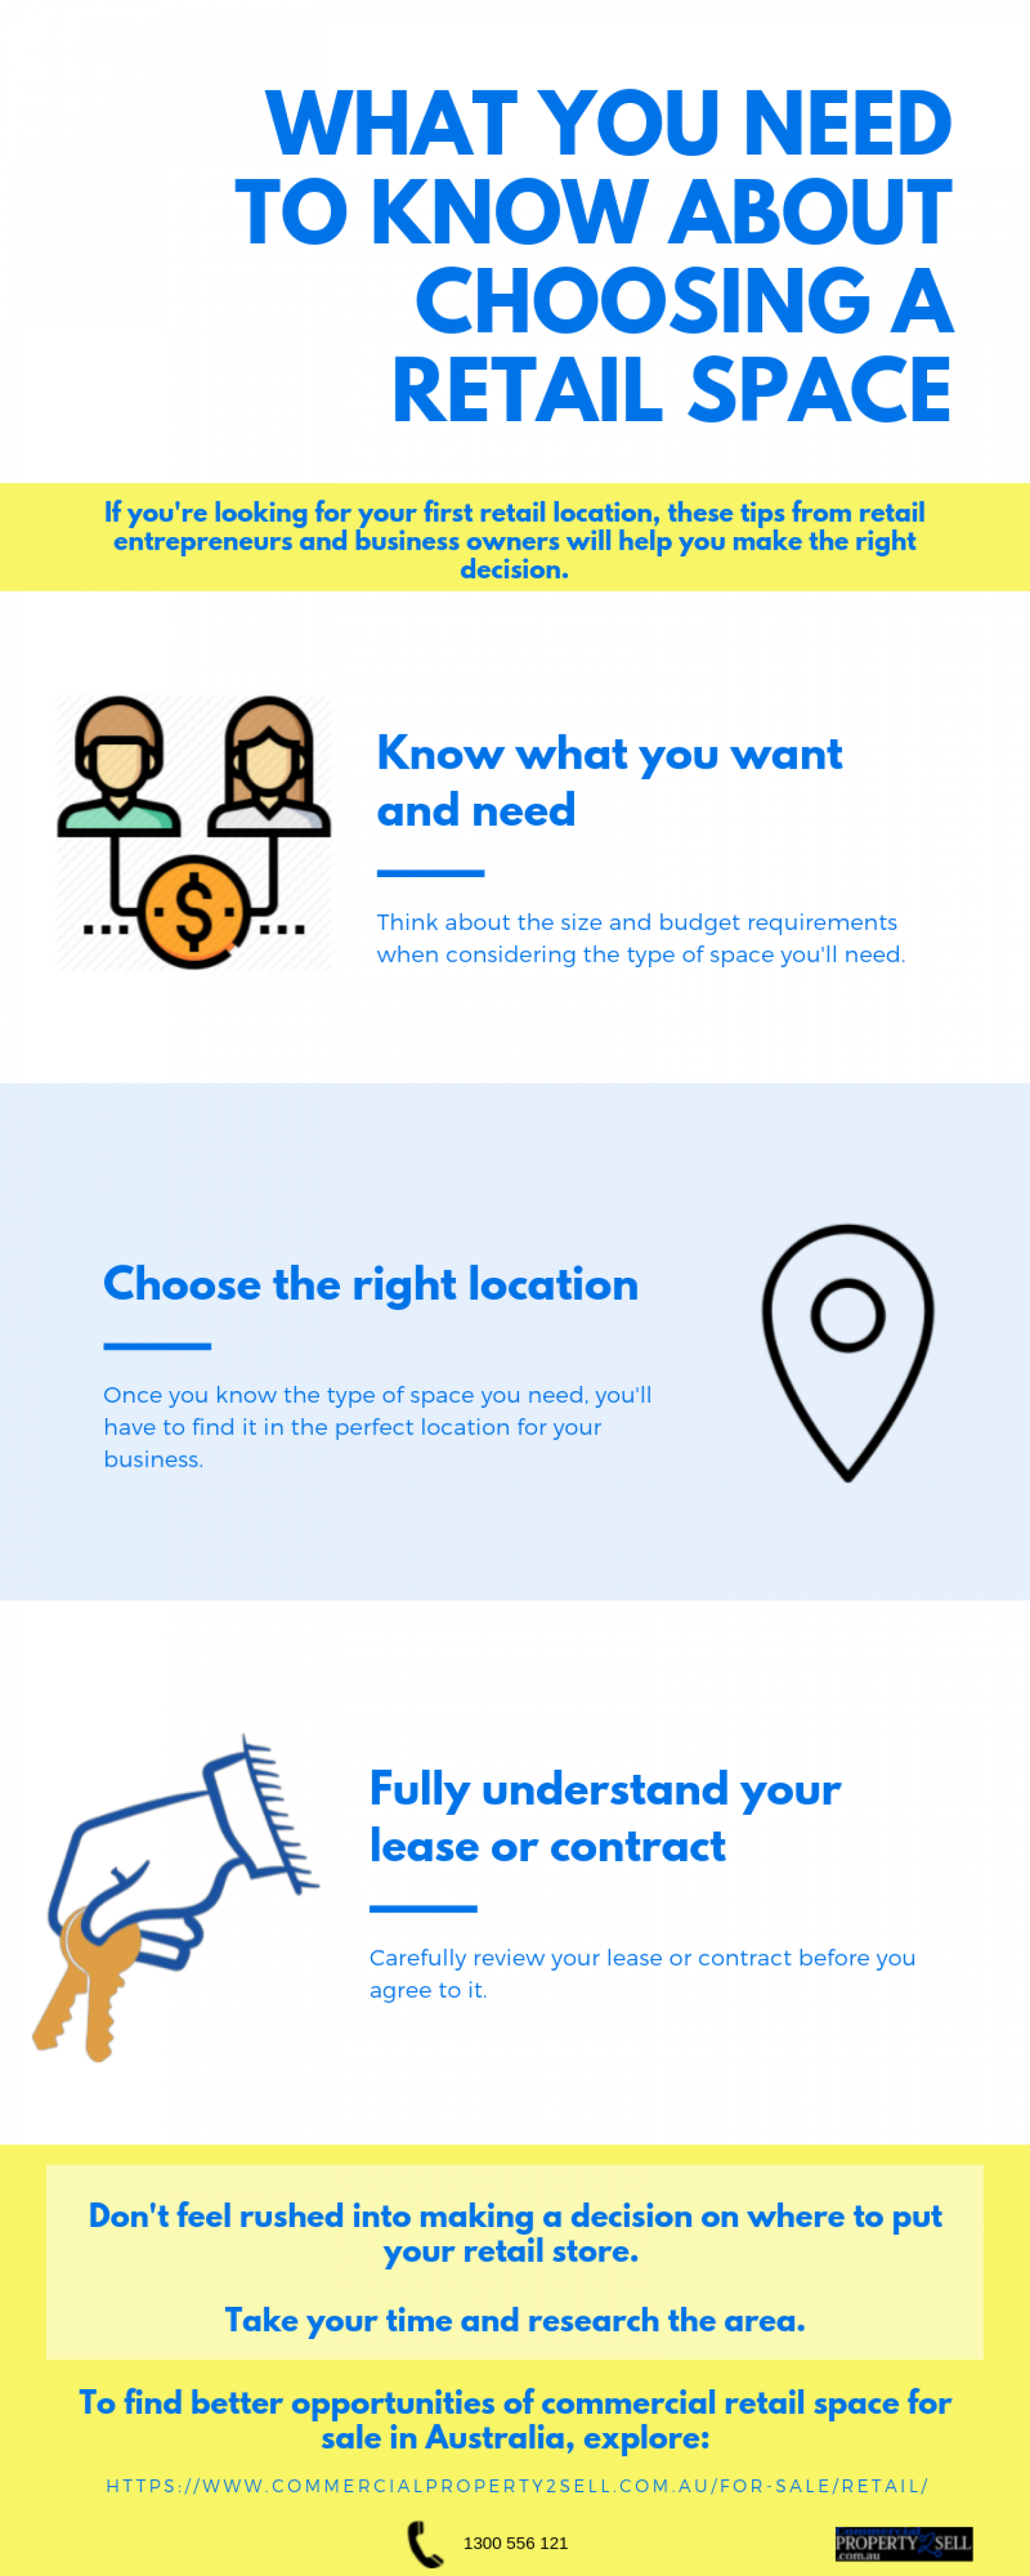 What You Need to Know About Choosing a Retail Space in Australia Infographic